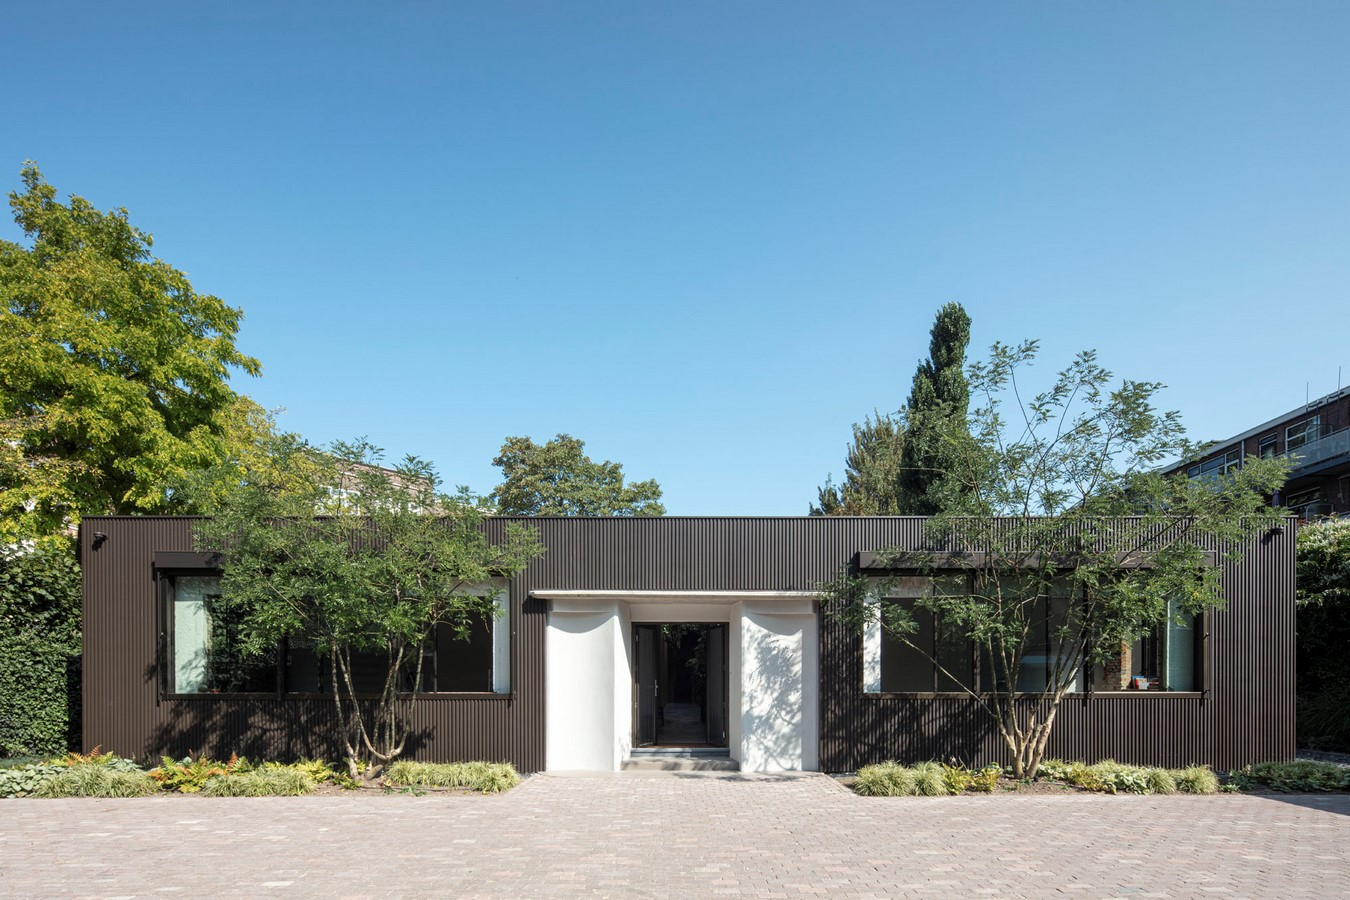 Abandoned 1940s Sports Building converted into New Villa With Naked Brick Walls by MASA Architects - Sheet1